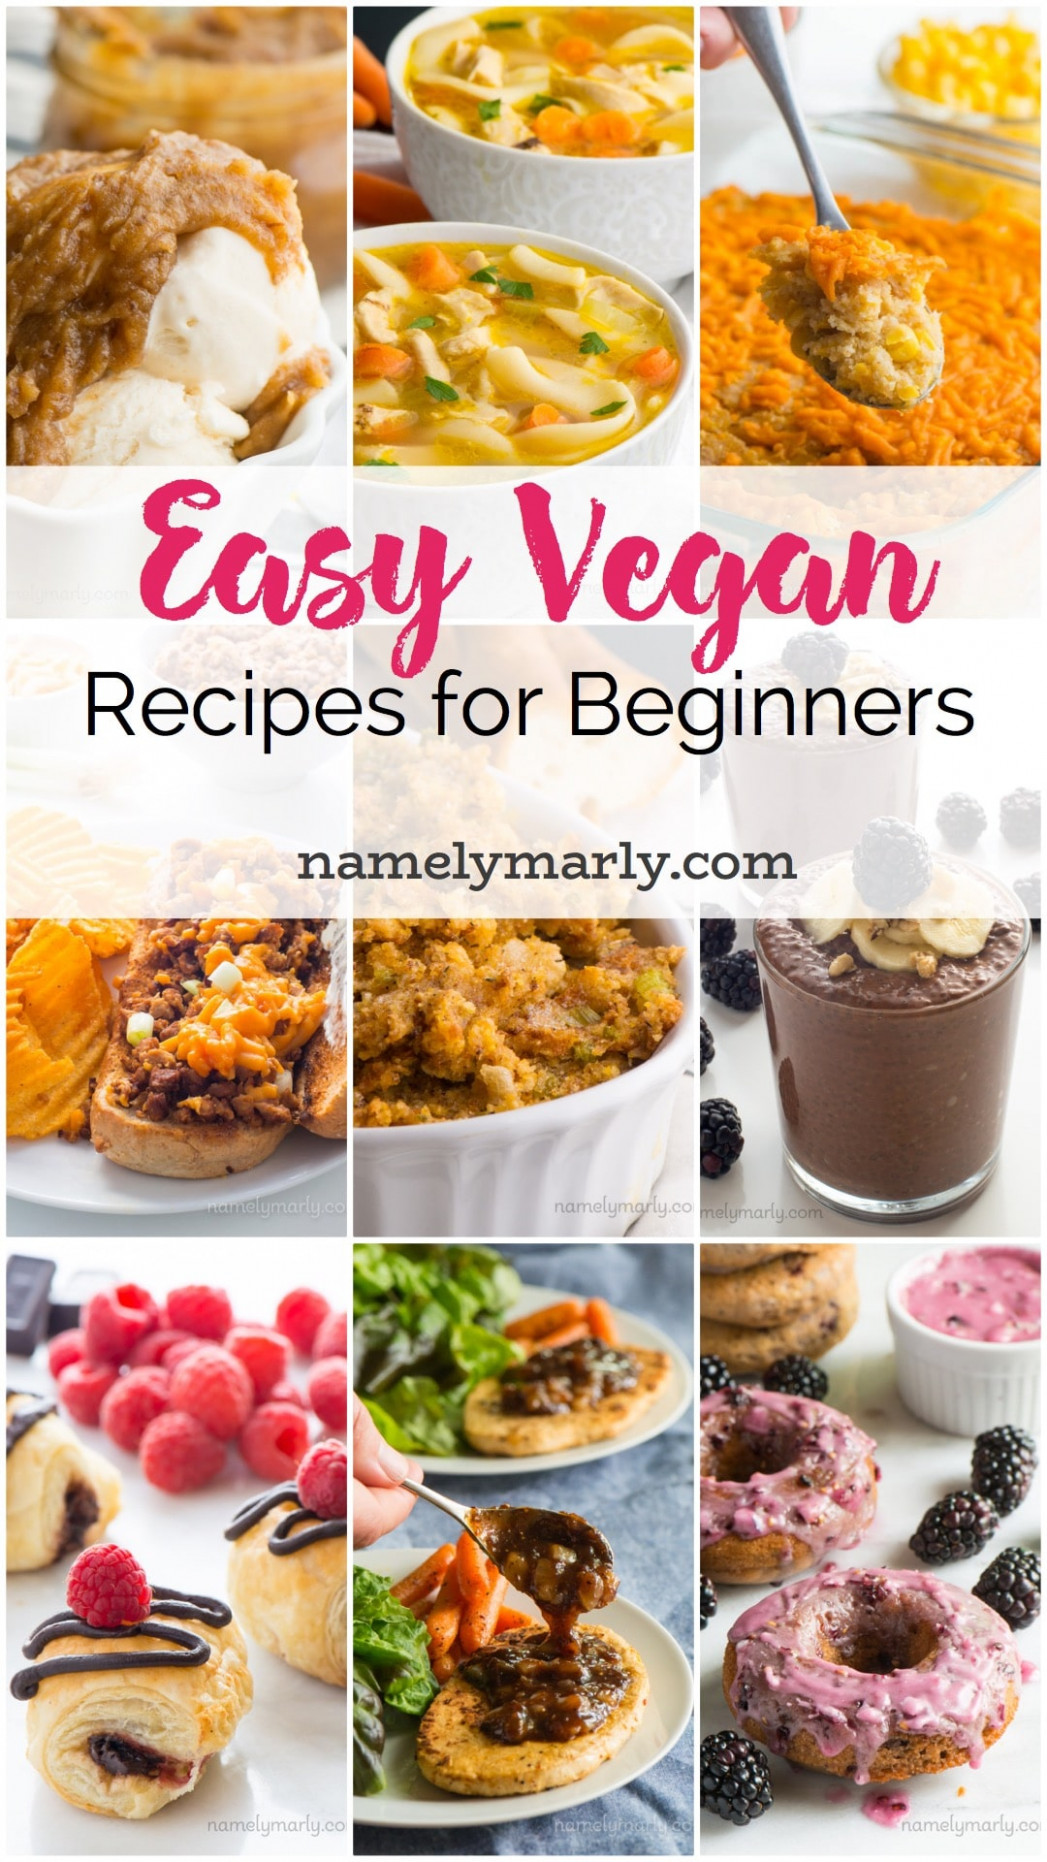 Simple Vegan Recipes for Beginners - Namely Marly - vegetarian recipes for beginners